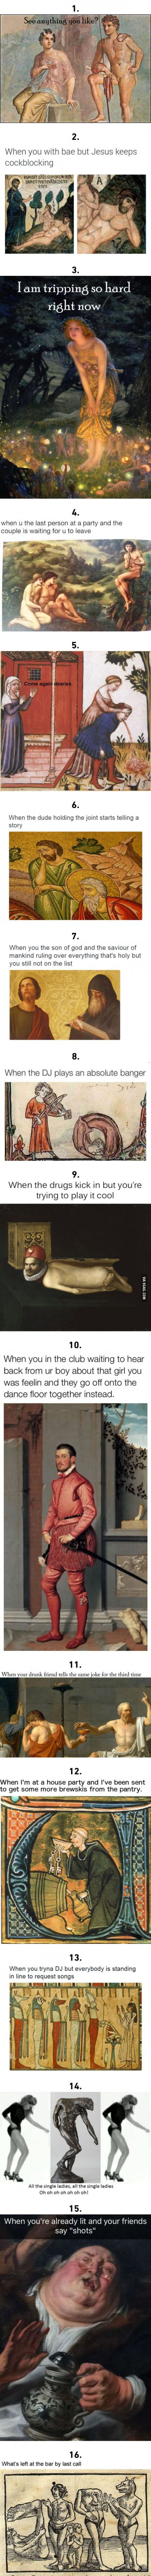 16 Historical Art Memes That Summarize Every Party